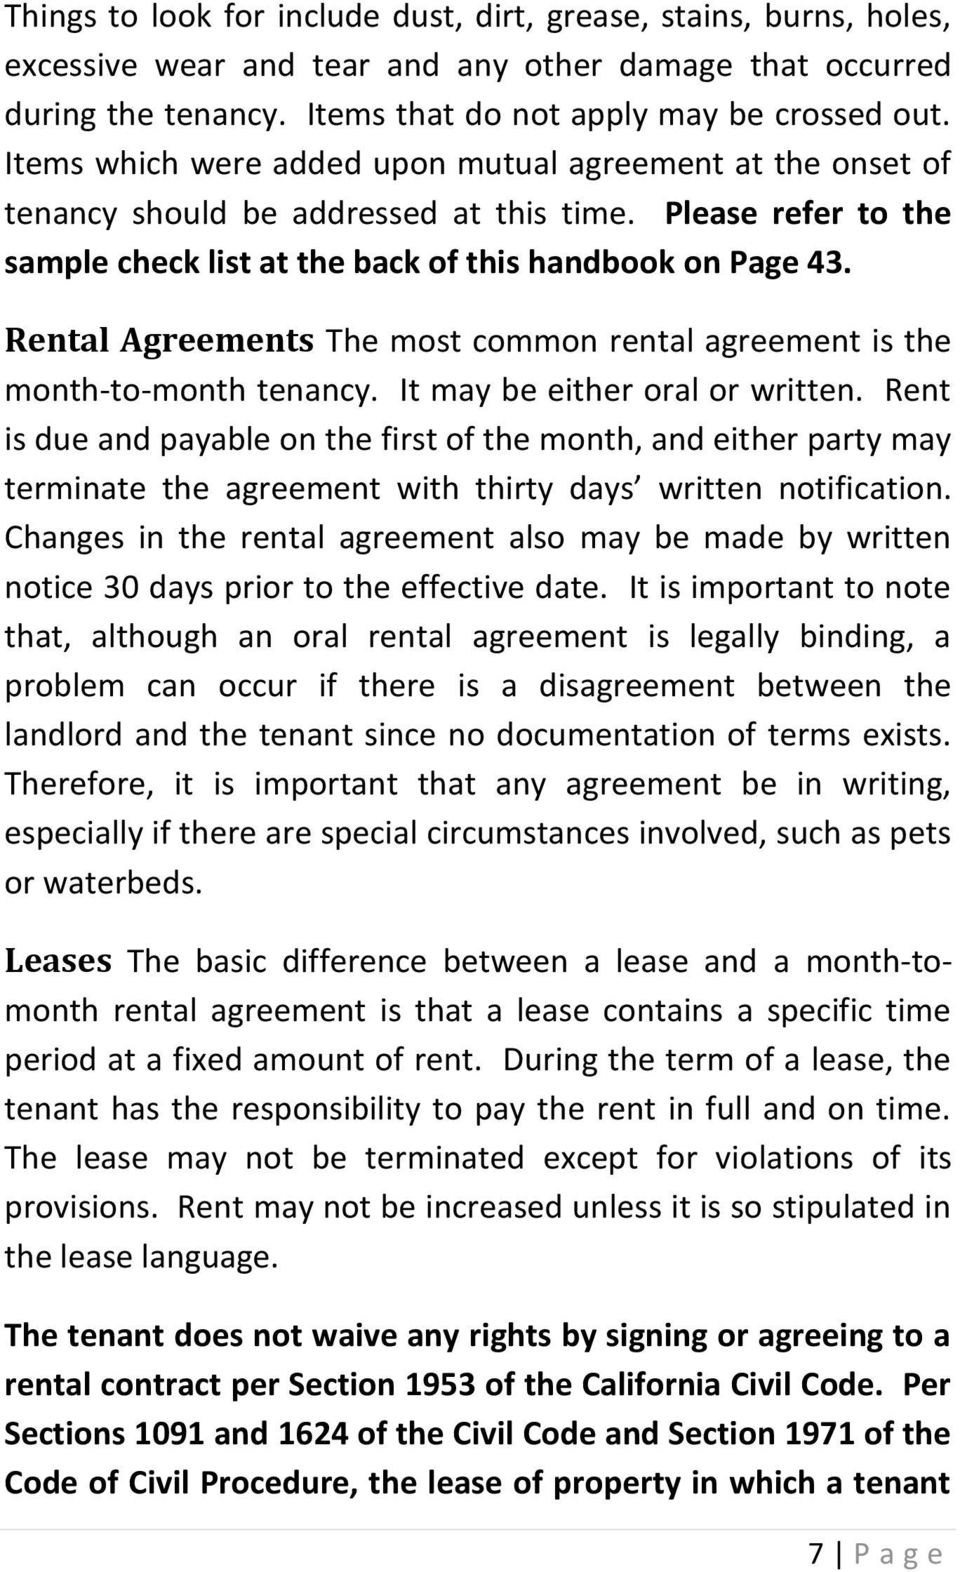 Rental Agreements The most common rental agreement is the month-to-month tenancy. It may be either oral or written.